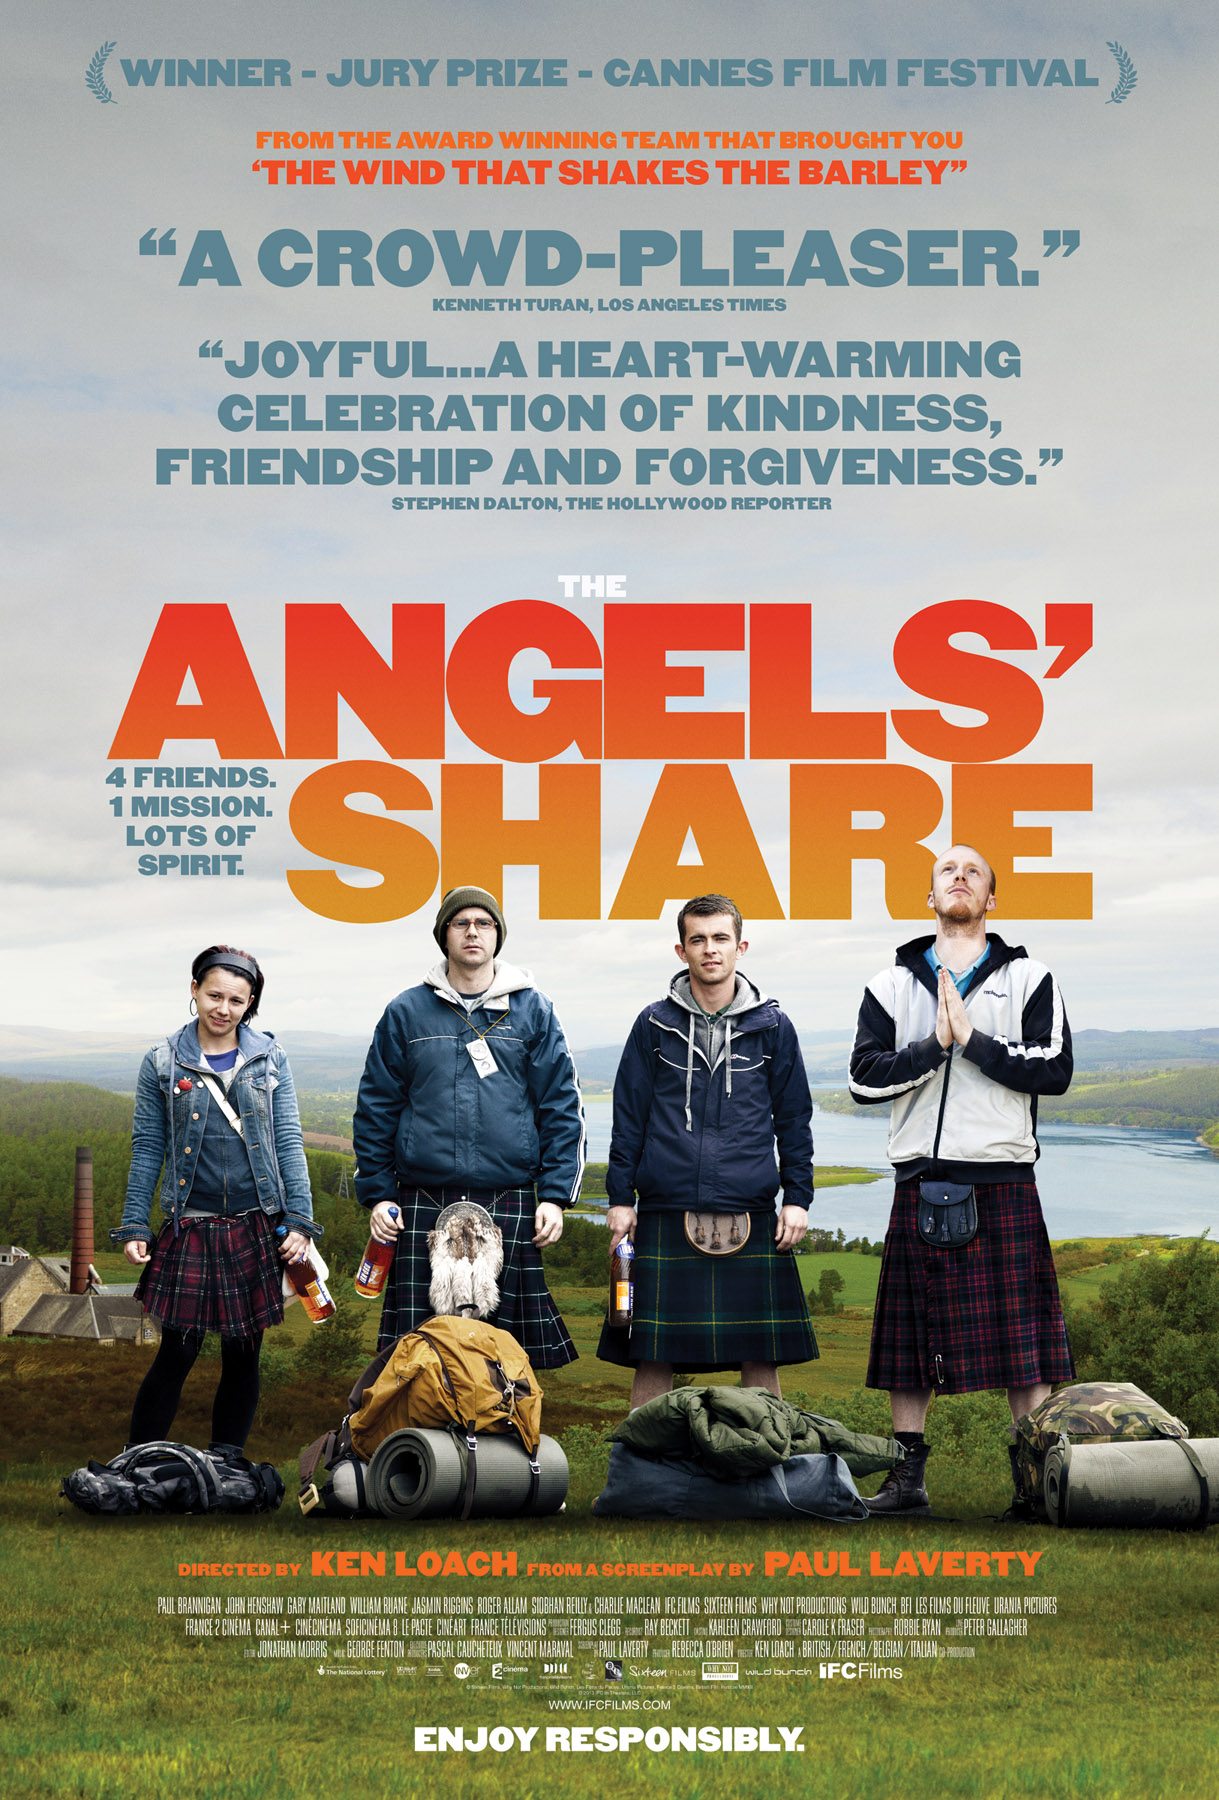 DVD Review: 'The Angels' Share' is one of 2013′s Crowd-Pleasing Gems